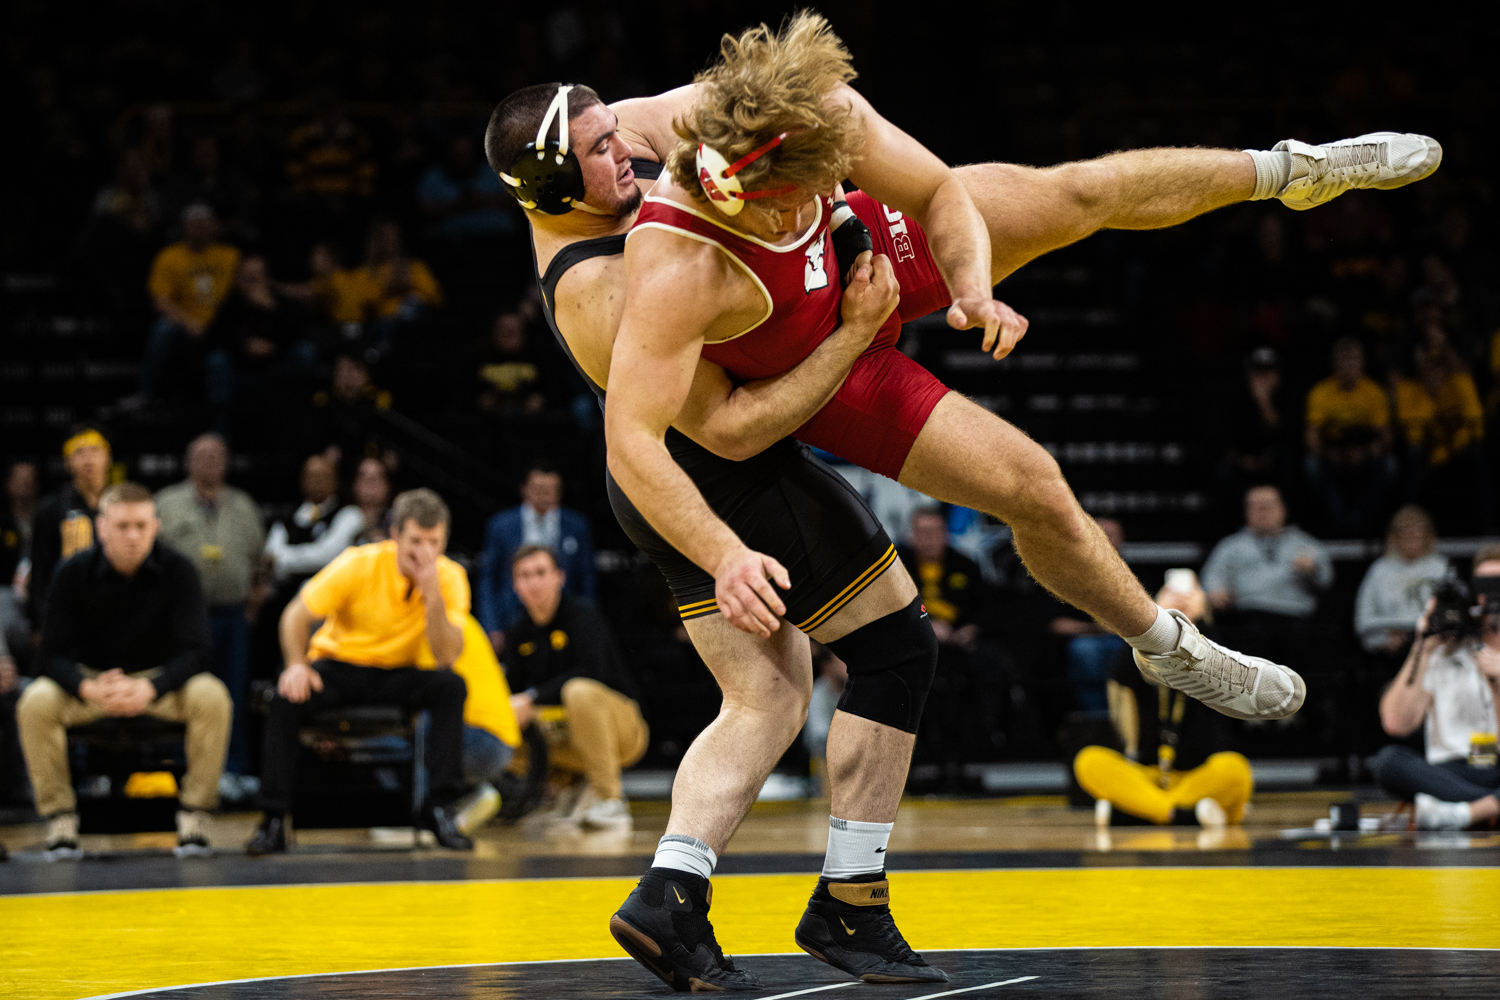 Iowa's 285-pound Tony Cassioppi wrestles Wisconsin's Trent Hillger during a wrestling match between No.1 Iowa and No. 6 Wisconsin at Carver-Hawkeye Arena on Sunday, Dec. 1, 2019. Cassioppi won by decision, 3-2, and the Hawkeyes defeated the Badgers, 32-3. (Shivansh Ahuja/The Daily Iowan)